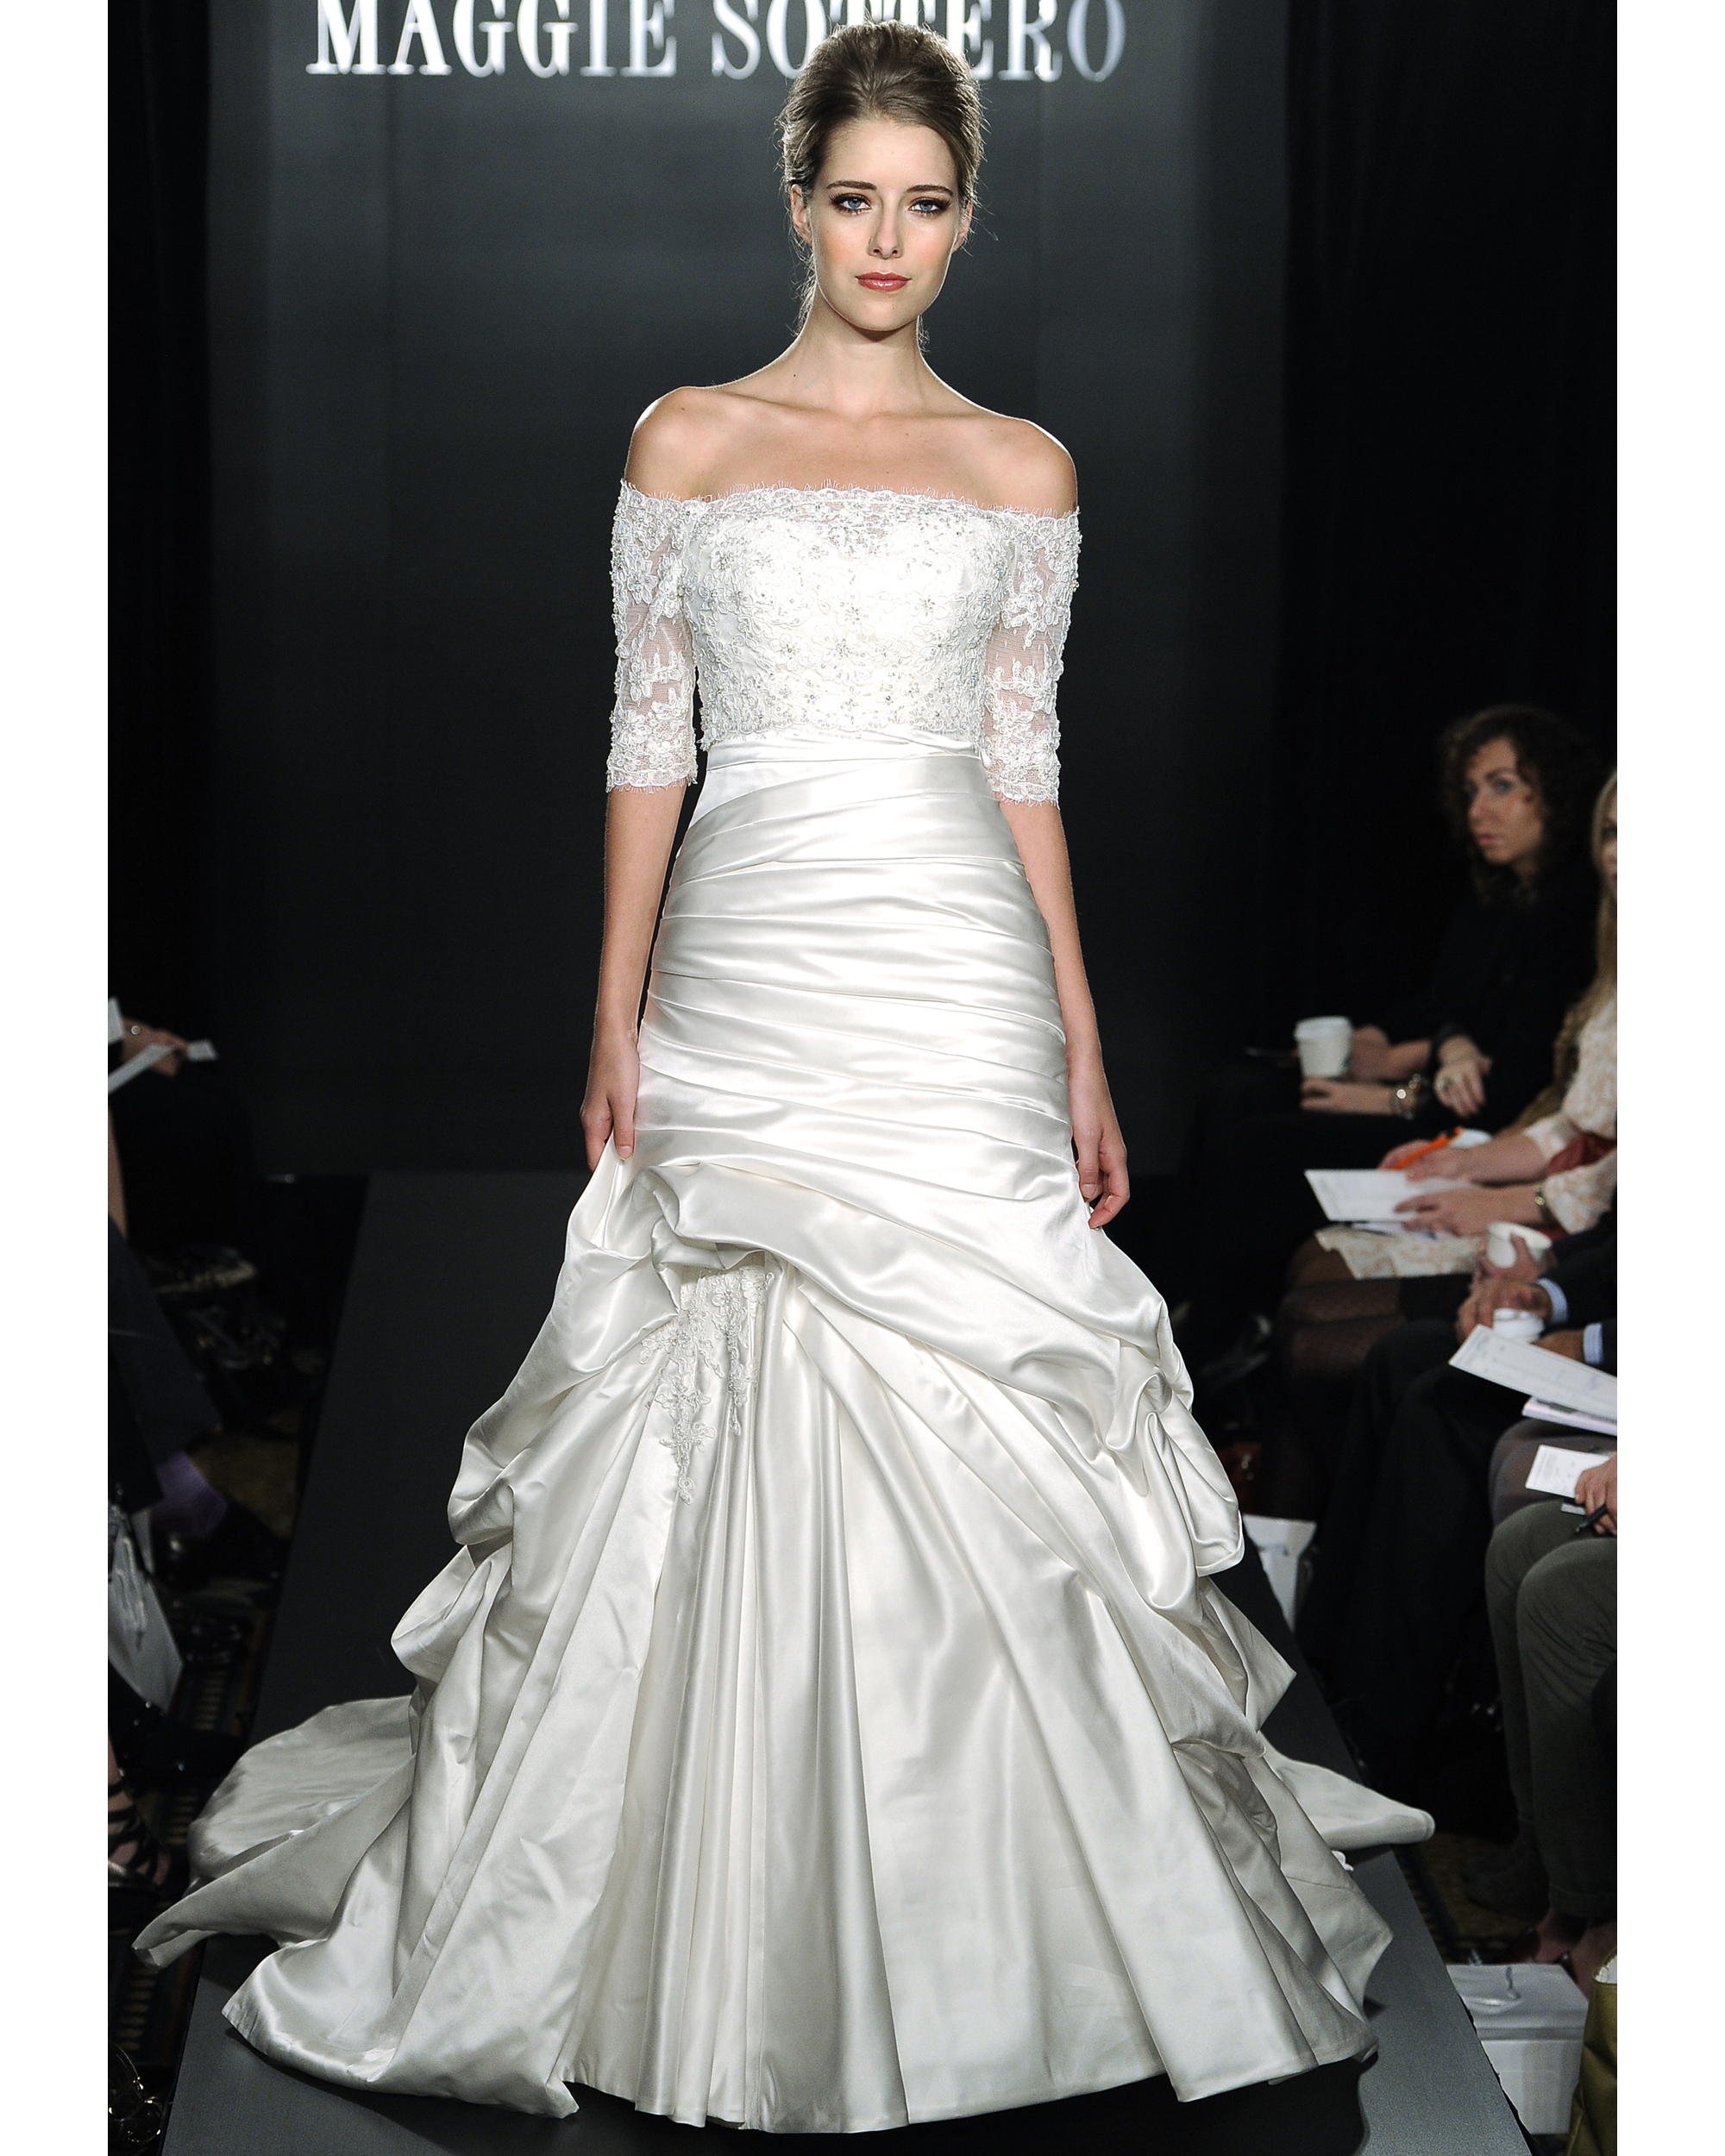 maggie-sottero-fall2012-wd108109_037.jpg